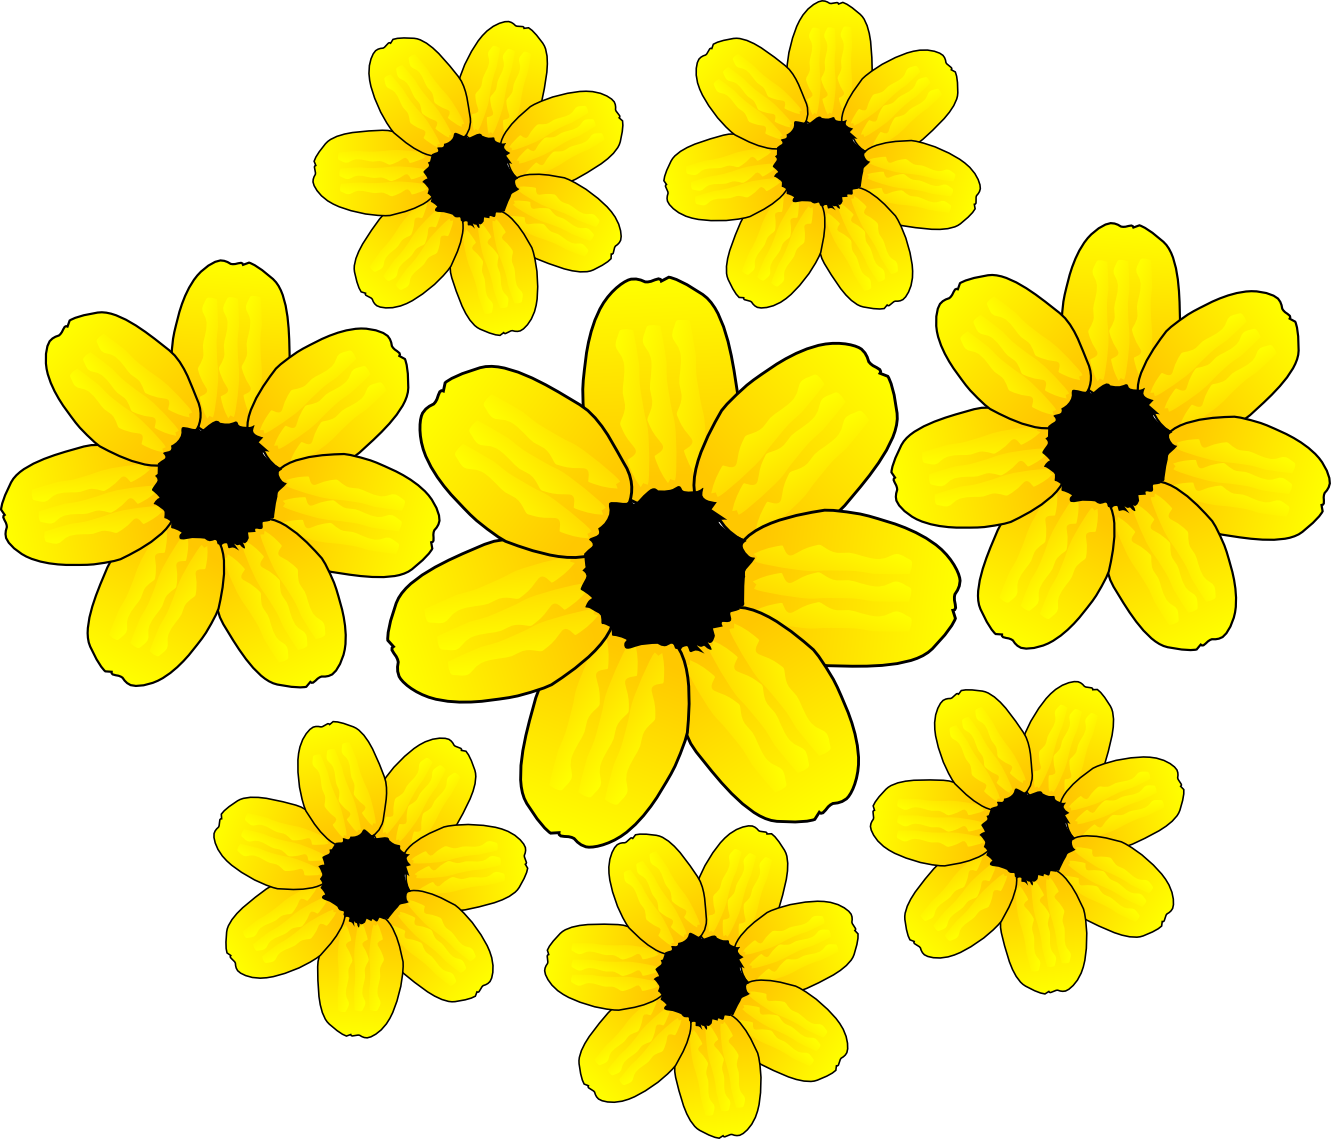 Yellow clipart flower clip art black and white Flowers flower clipart flower accents flower graphics the 3 ... clip art black and white